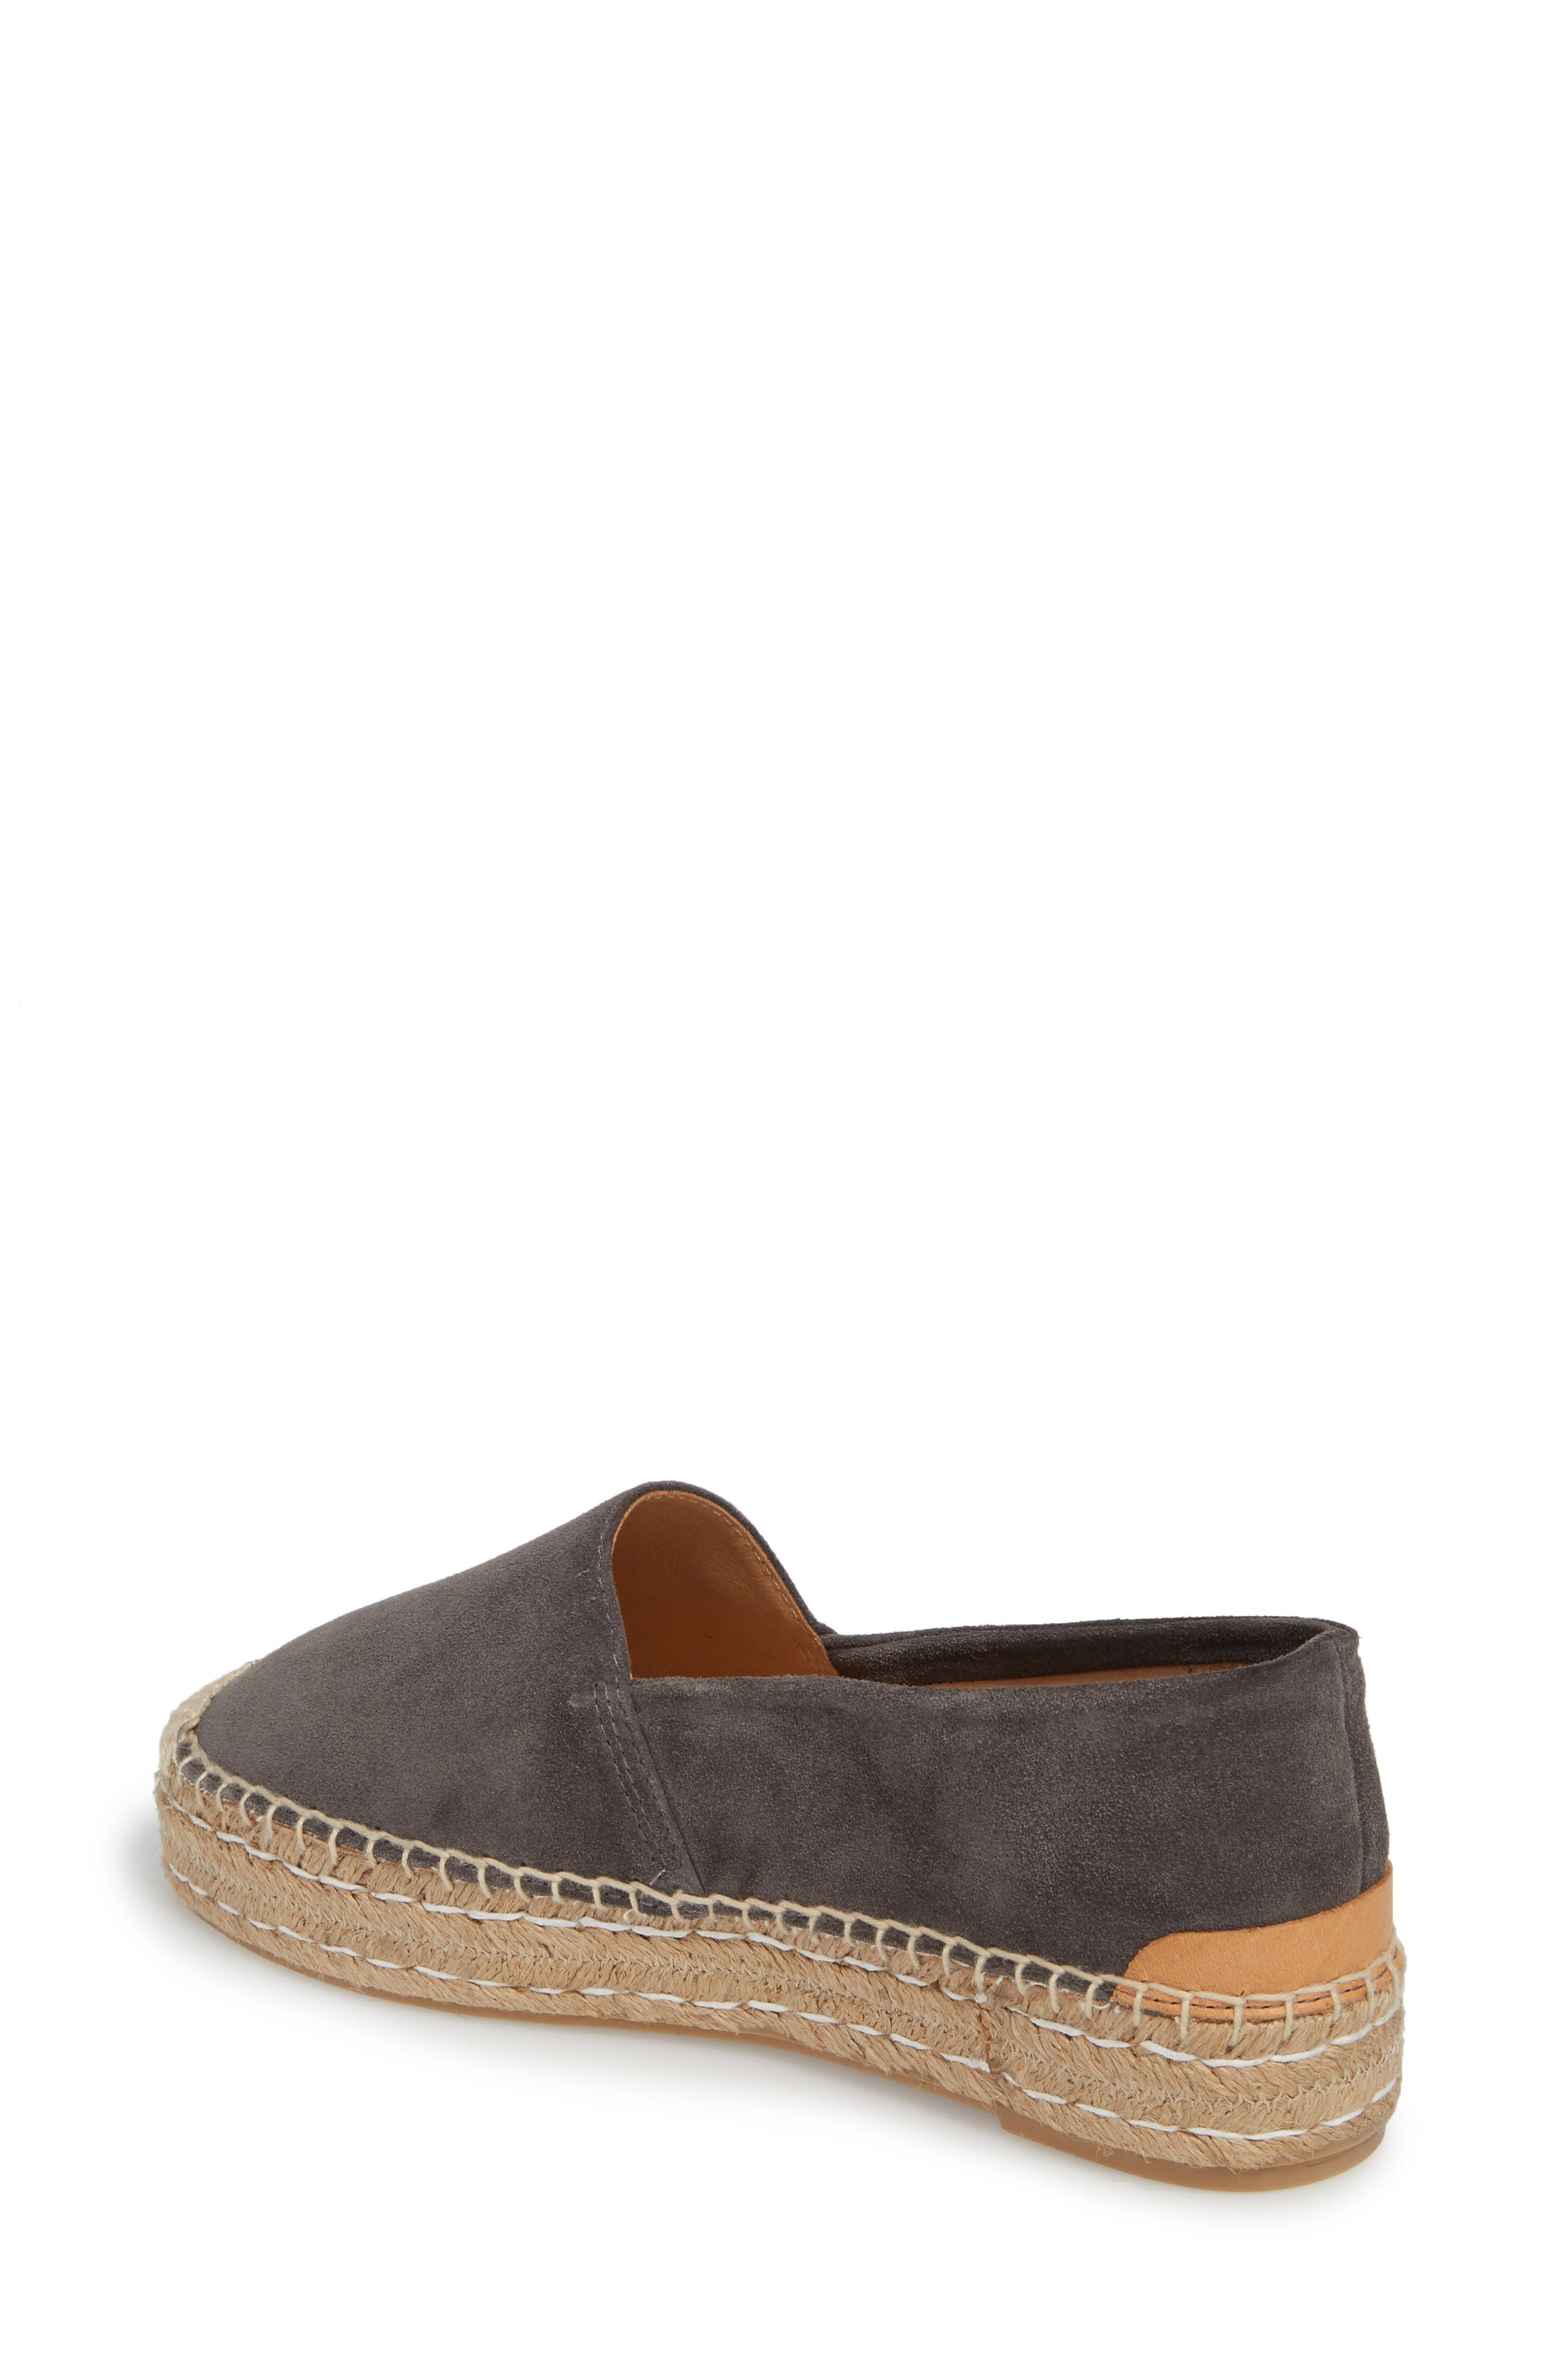 Abigail Espadrille Slip-On,                             Alternate thumbnail 2, color,                             CHARCOAL SUEDE